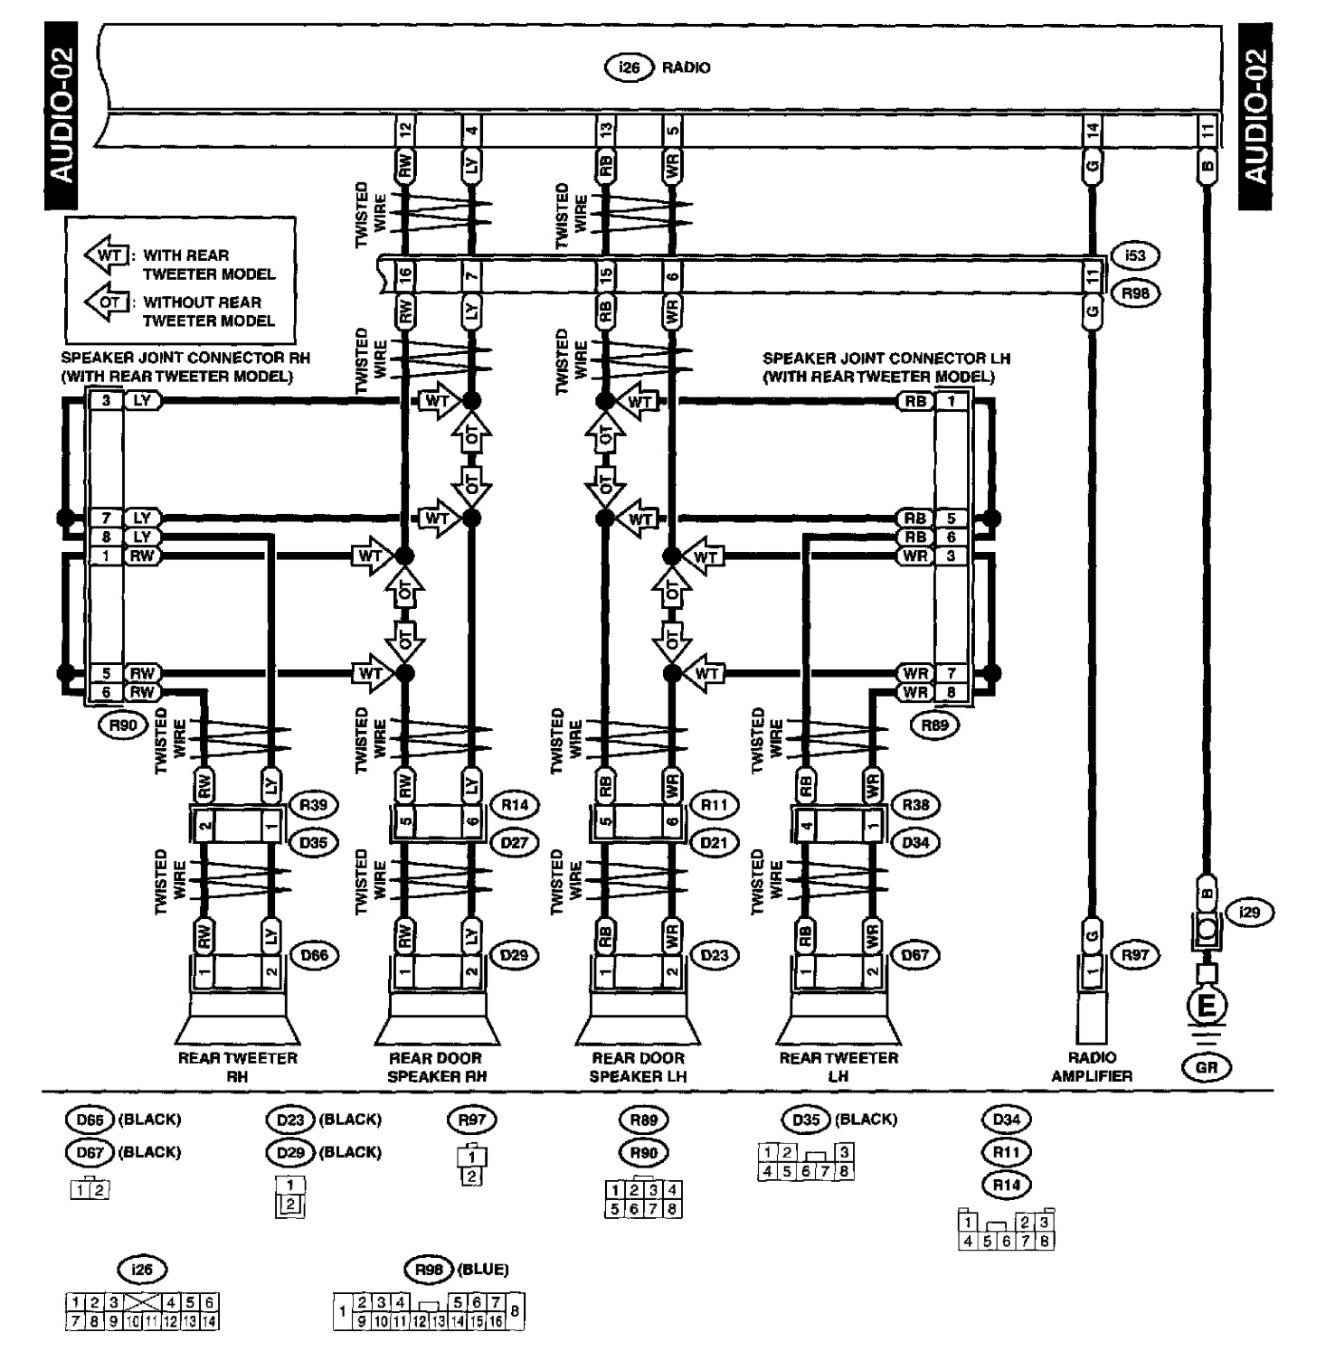 magnificent vx wiring diagram pattern everything you need to know eurovox wiring diagram vx commodore eurovox wiring diagram wiring diagram virtual fretboard